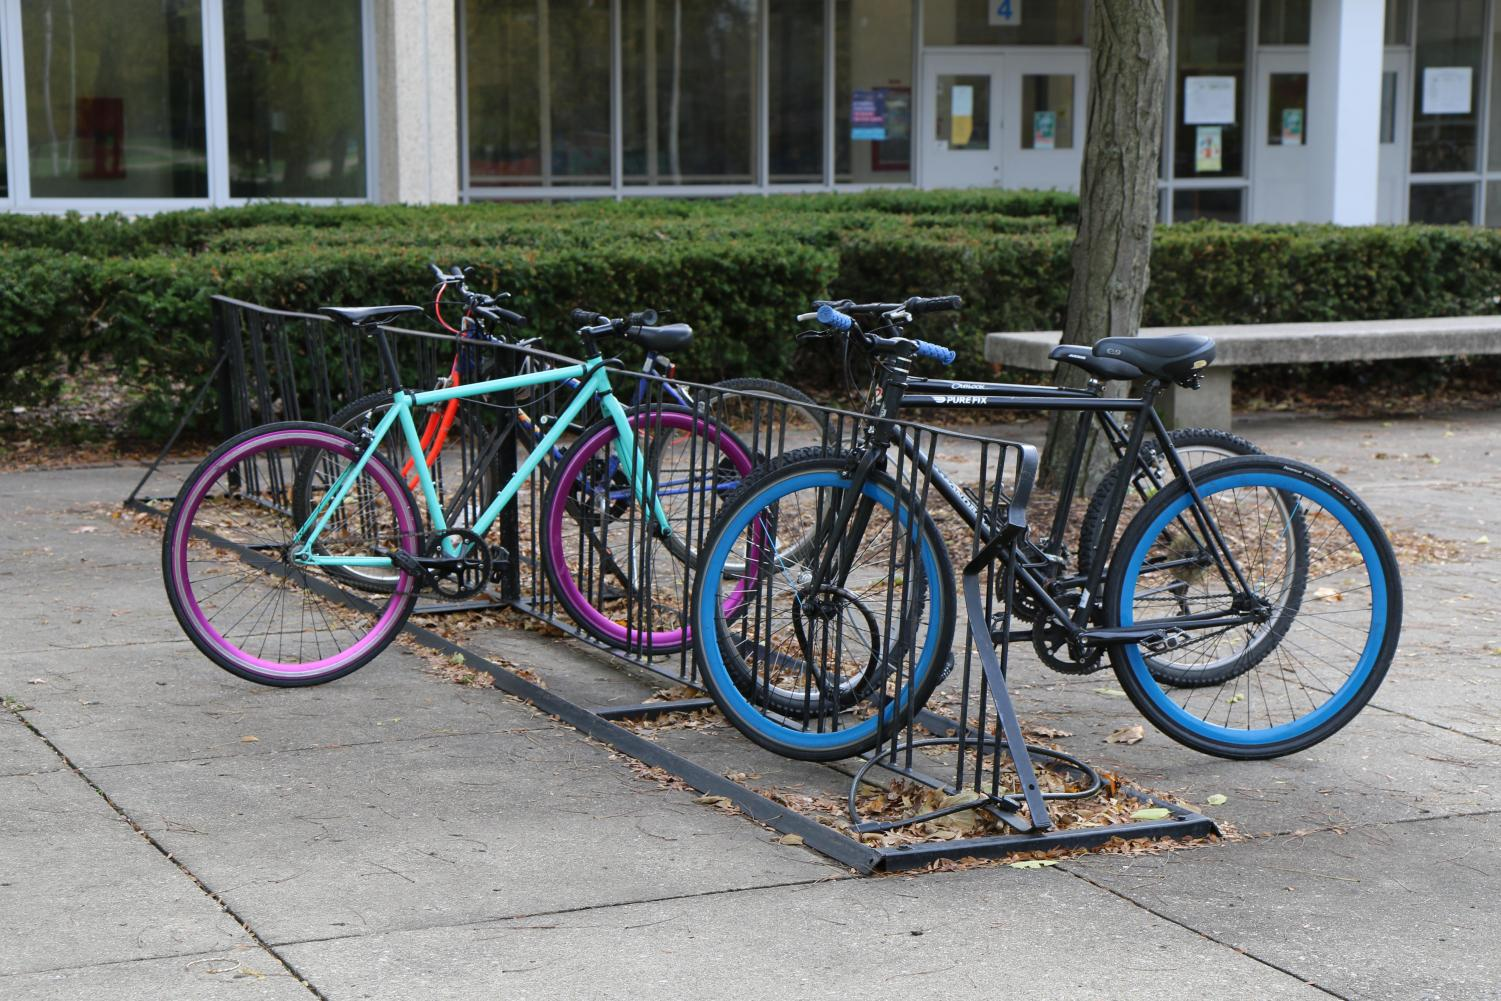 Taft bike racks at the front entrance near door 4 are going to be installed for any eagles biking to school when the warm weather comes again.